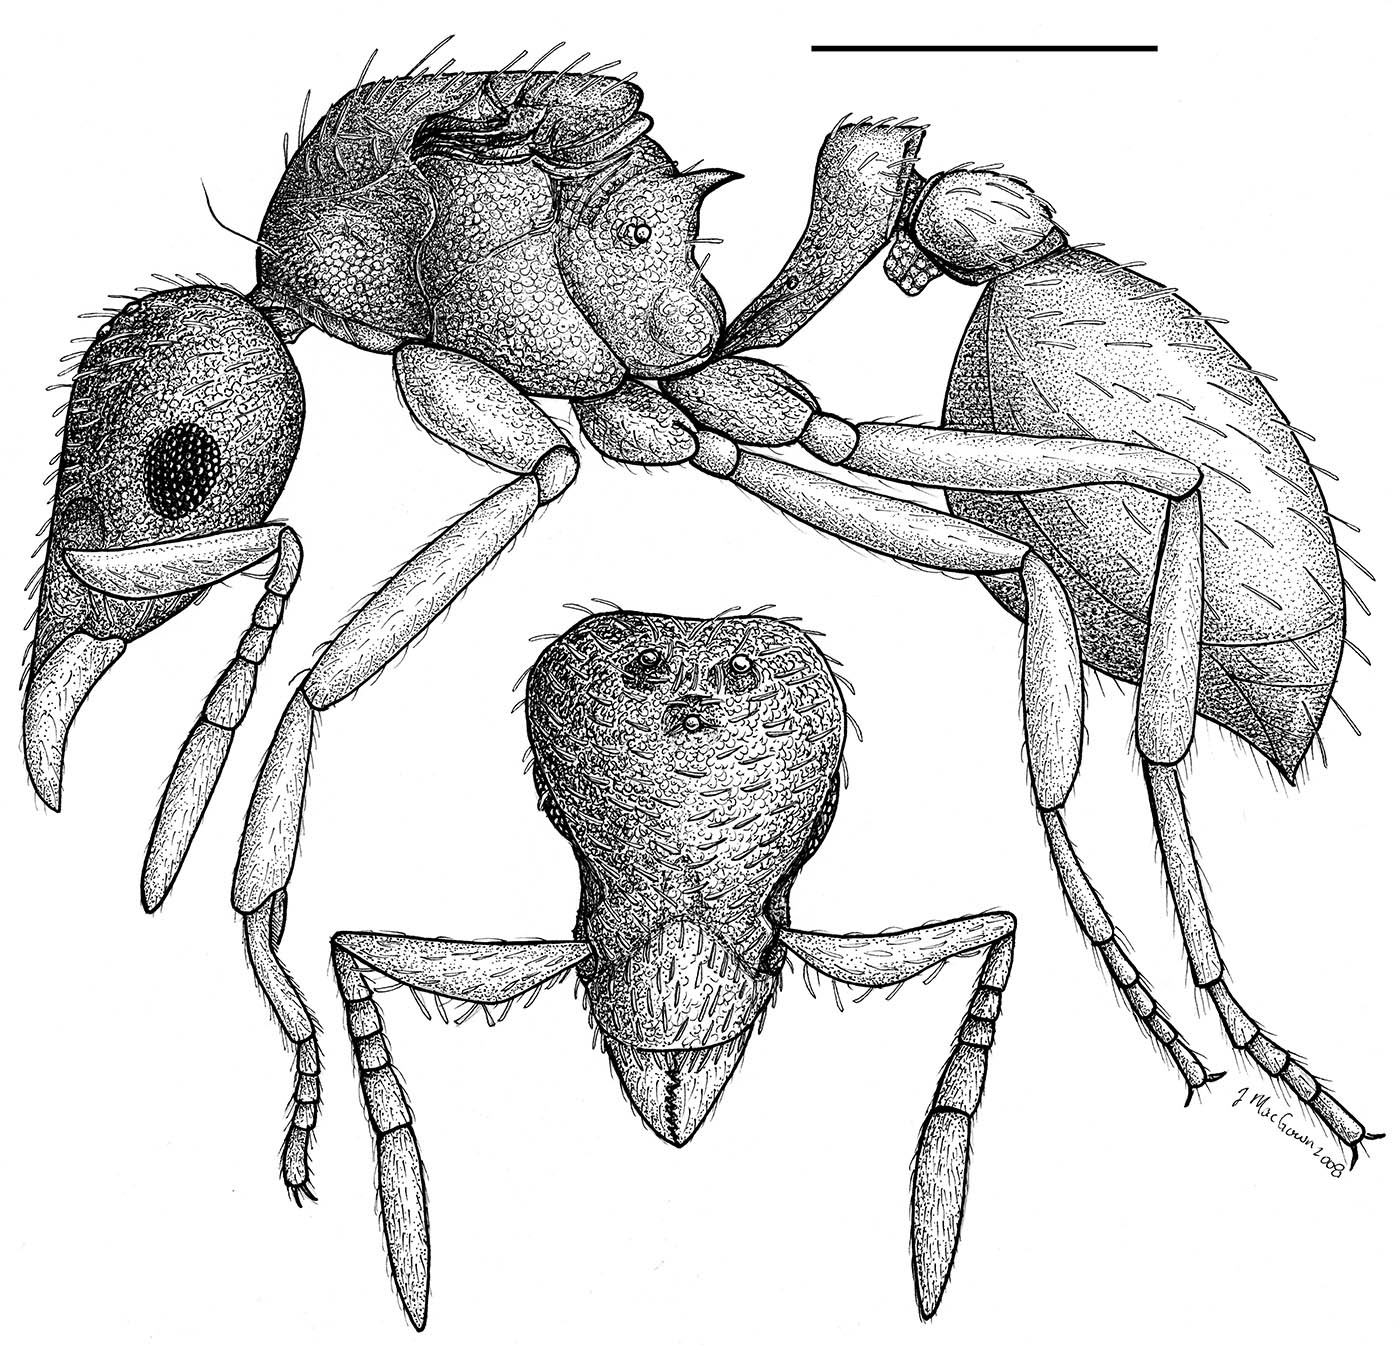 Strumigenys margaritae, head and profile view of dealate queen